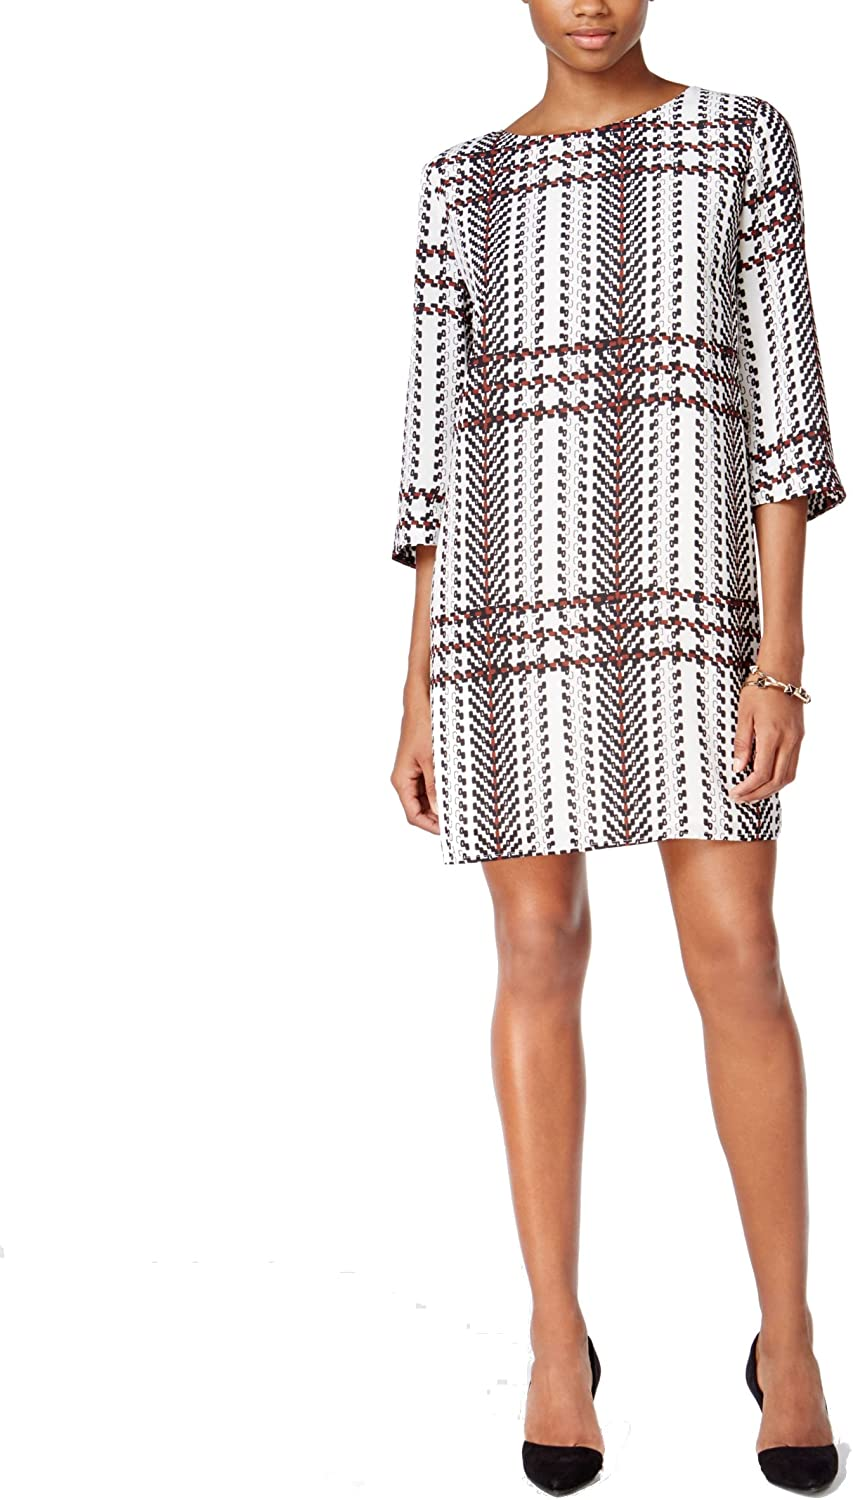 Bar III Women's Printed Shift Dress Egret Combo XL